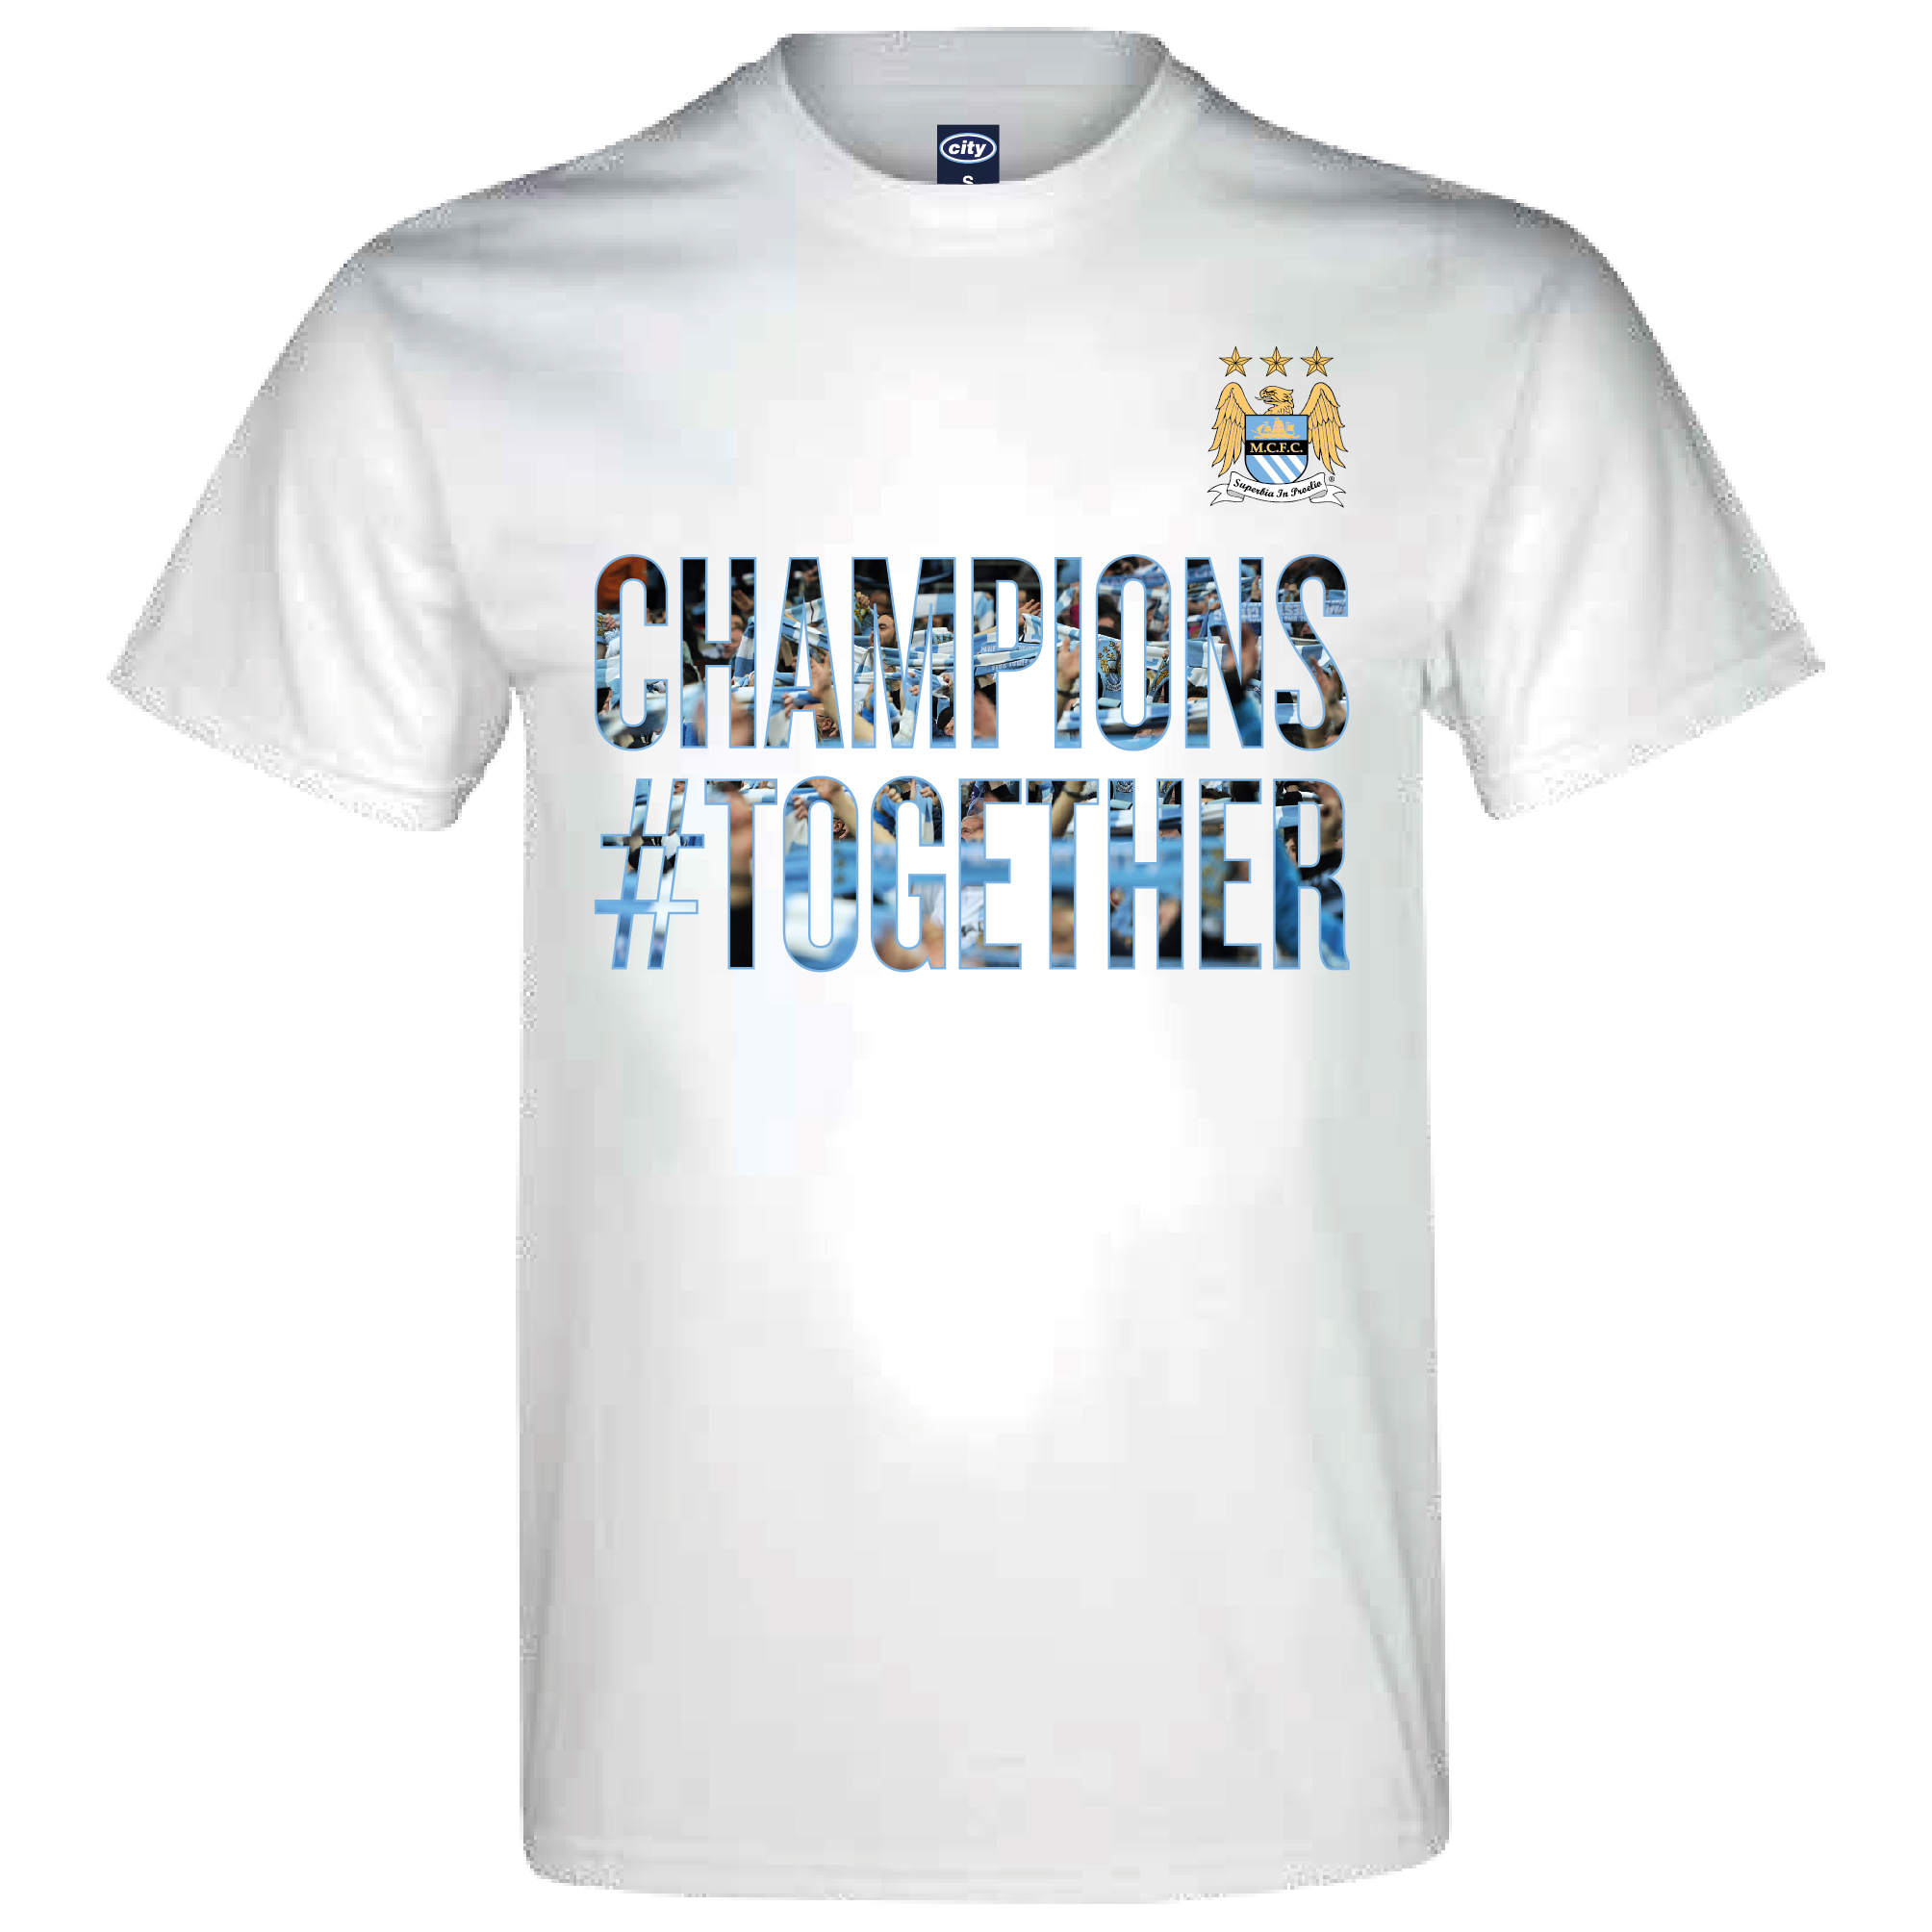 Manchester City 2013/14 Premier league Winners T-Shirt - White- Mens